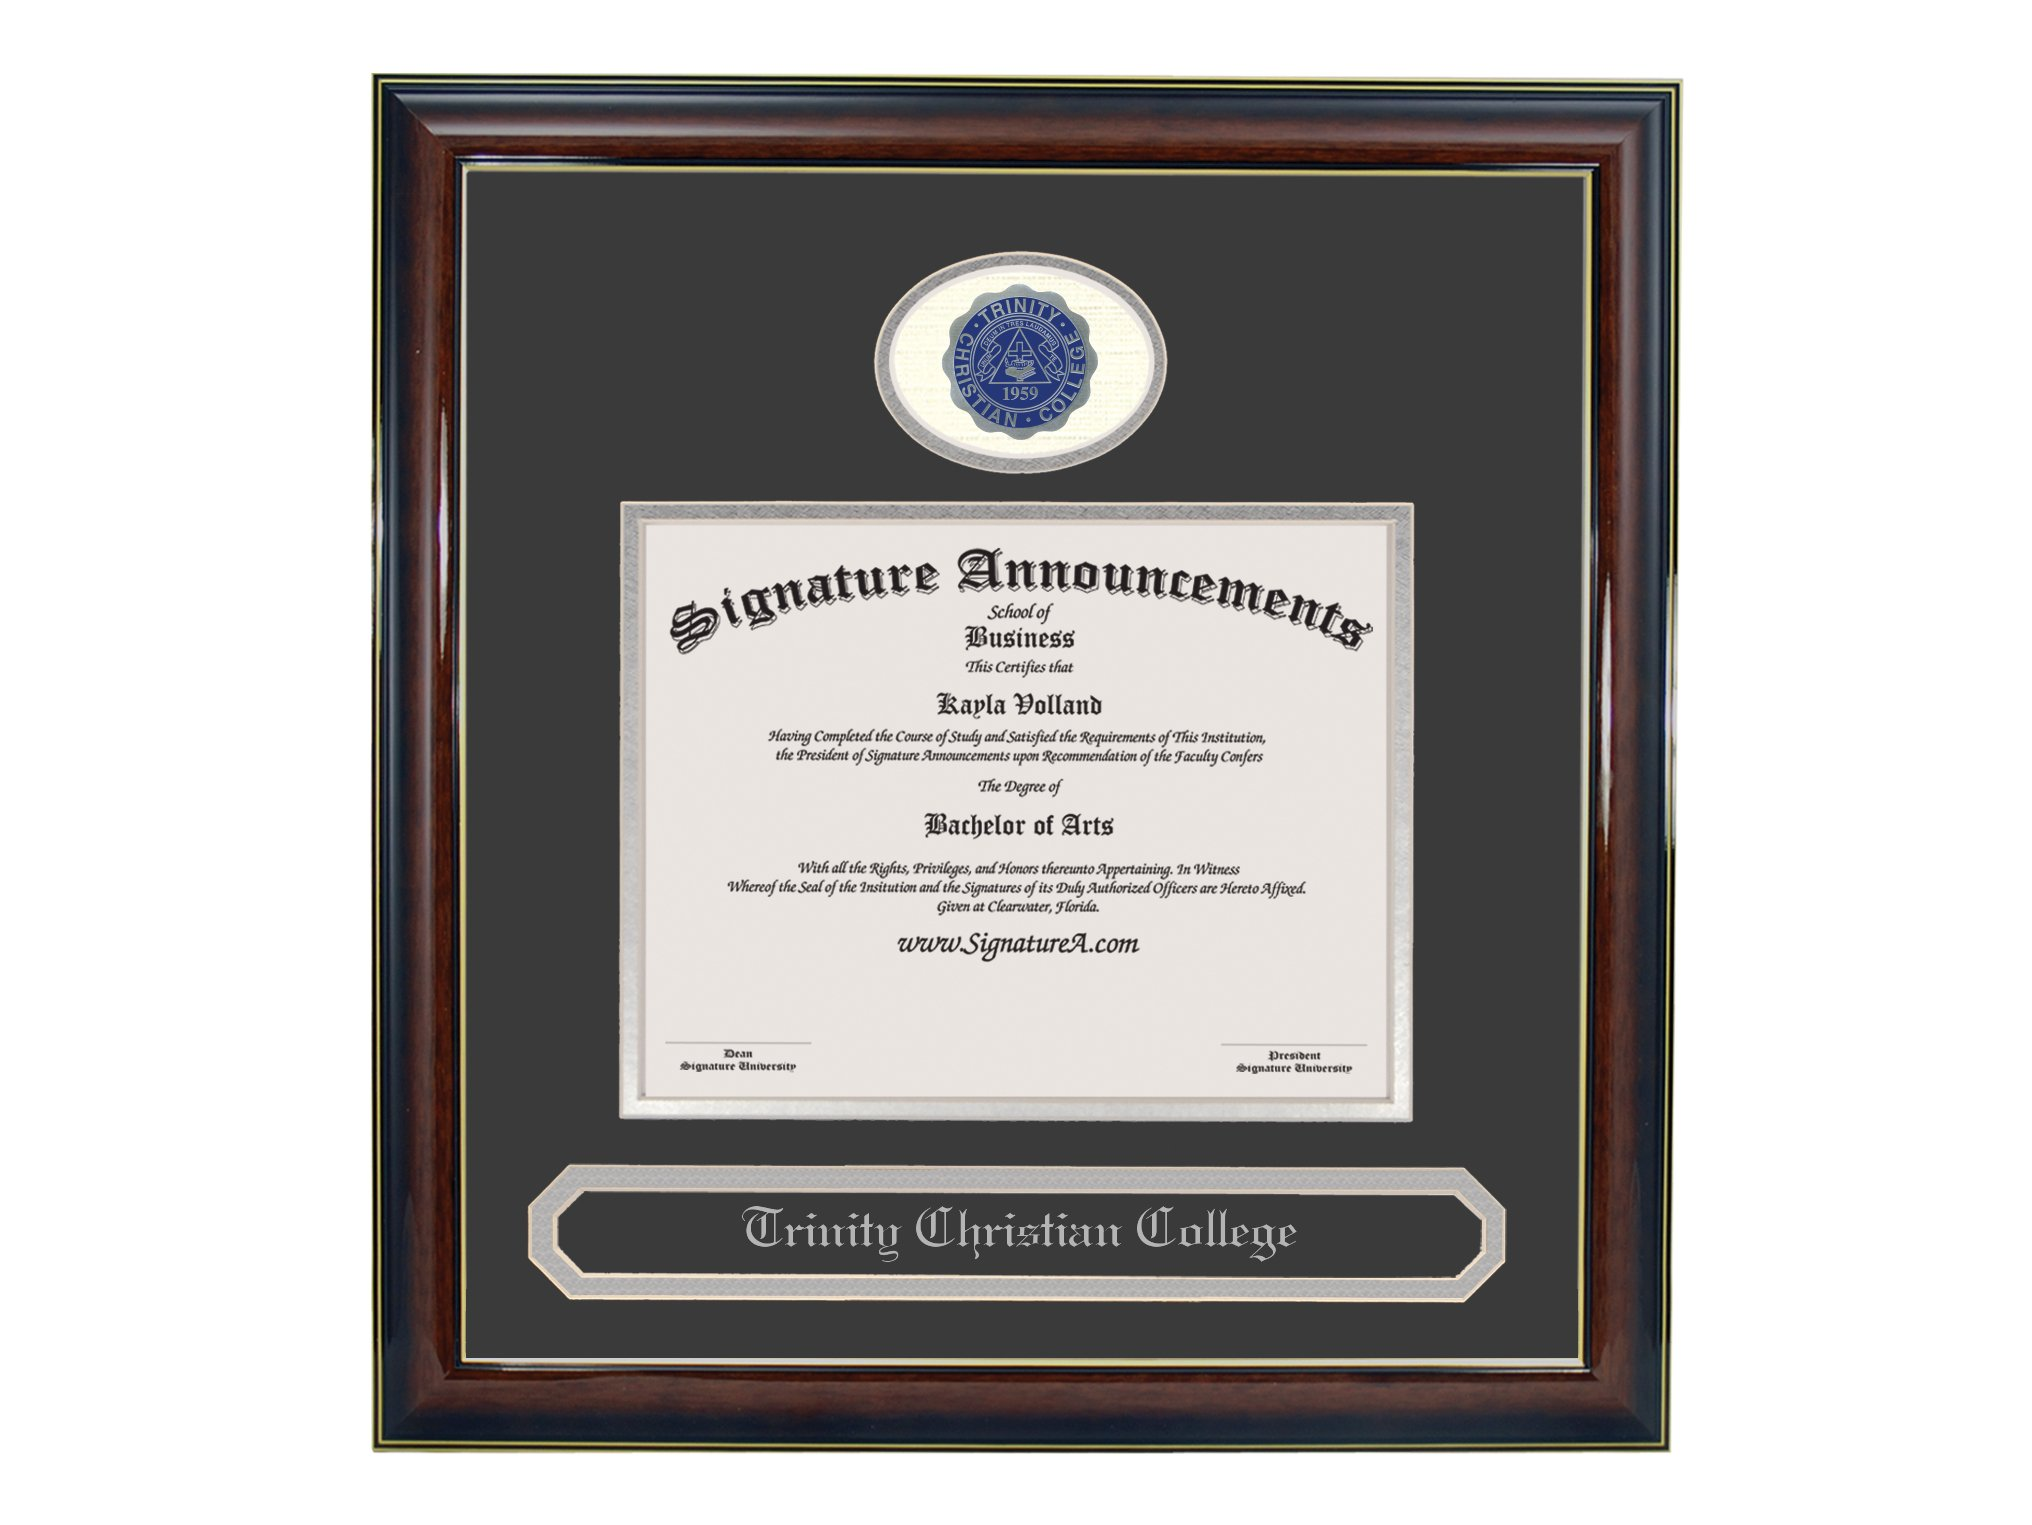 Signature Announcements Trinity Christian College Undergraduate Sculpted Foil Seal & Name Graduation Diploma Frame, 16'' x 16'', Gloss Mahogany with Gold Accent